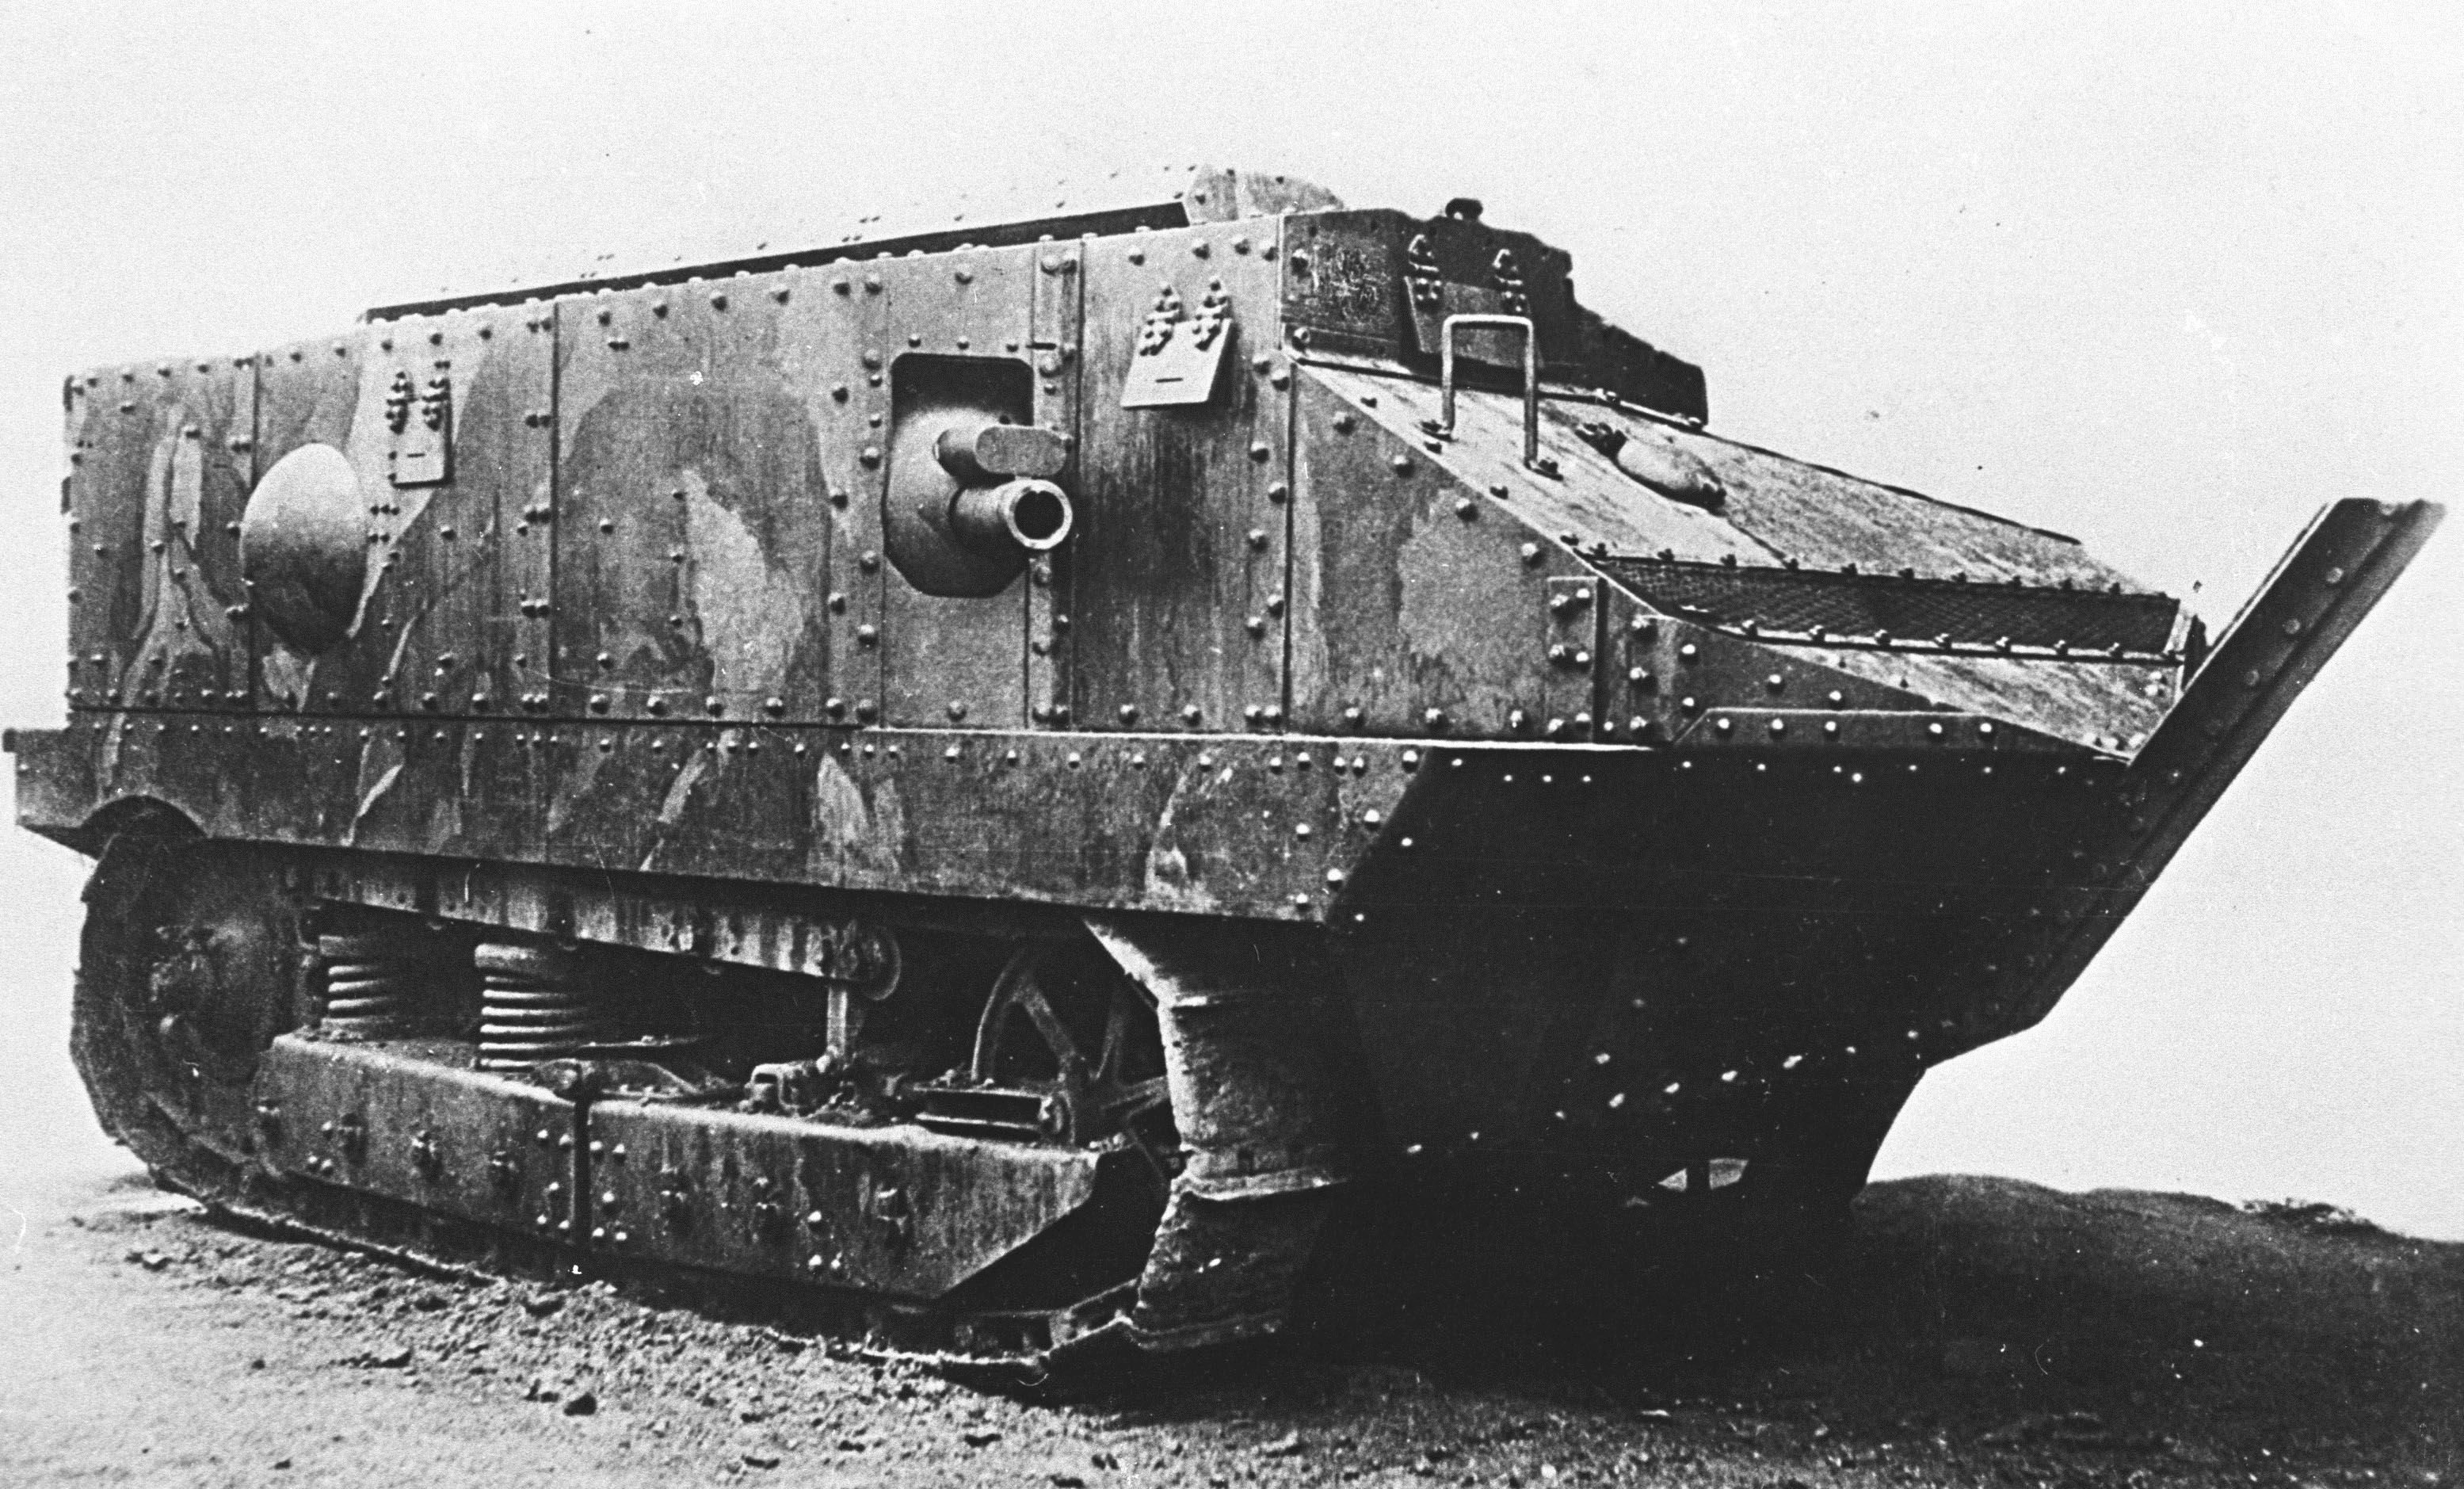 The first tanks of the First World War. Breakthrough in the technical equipment of the armies 46